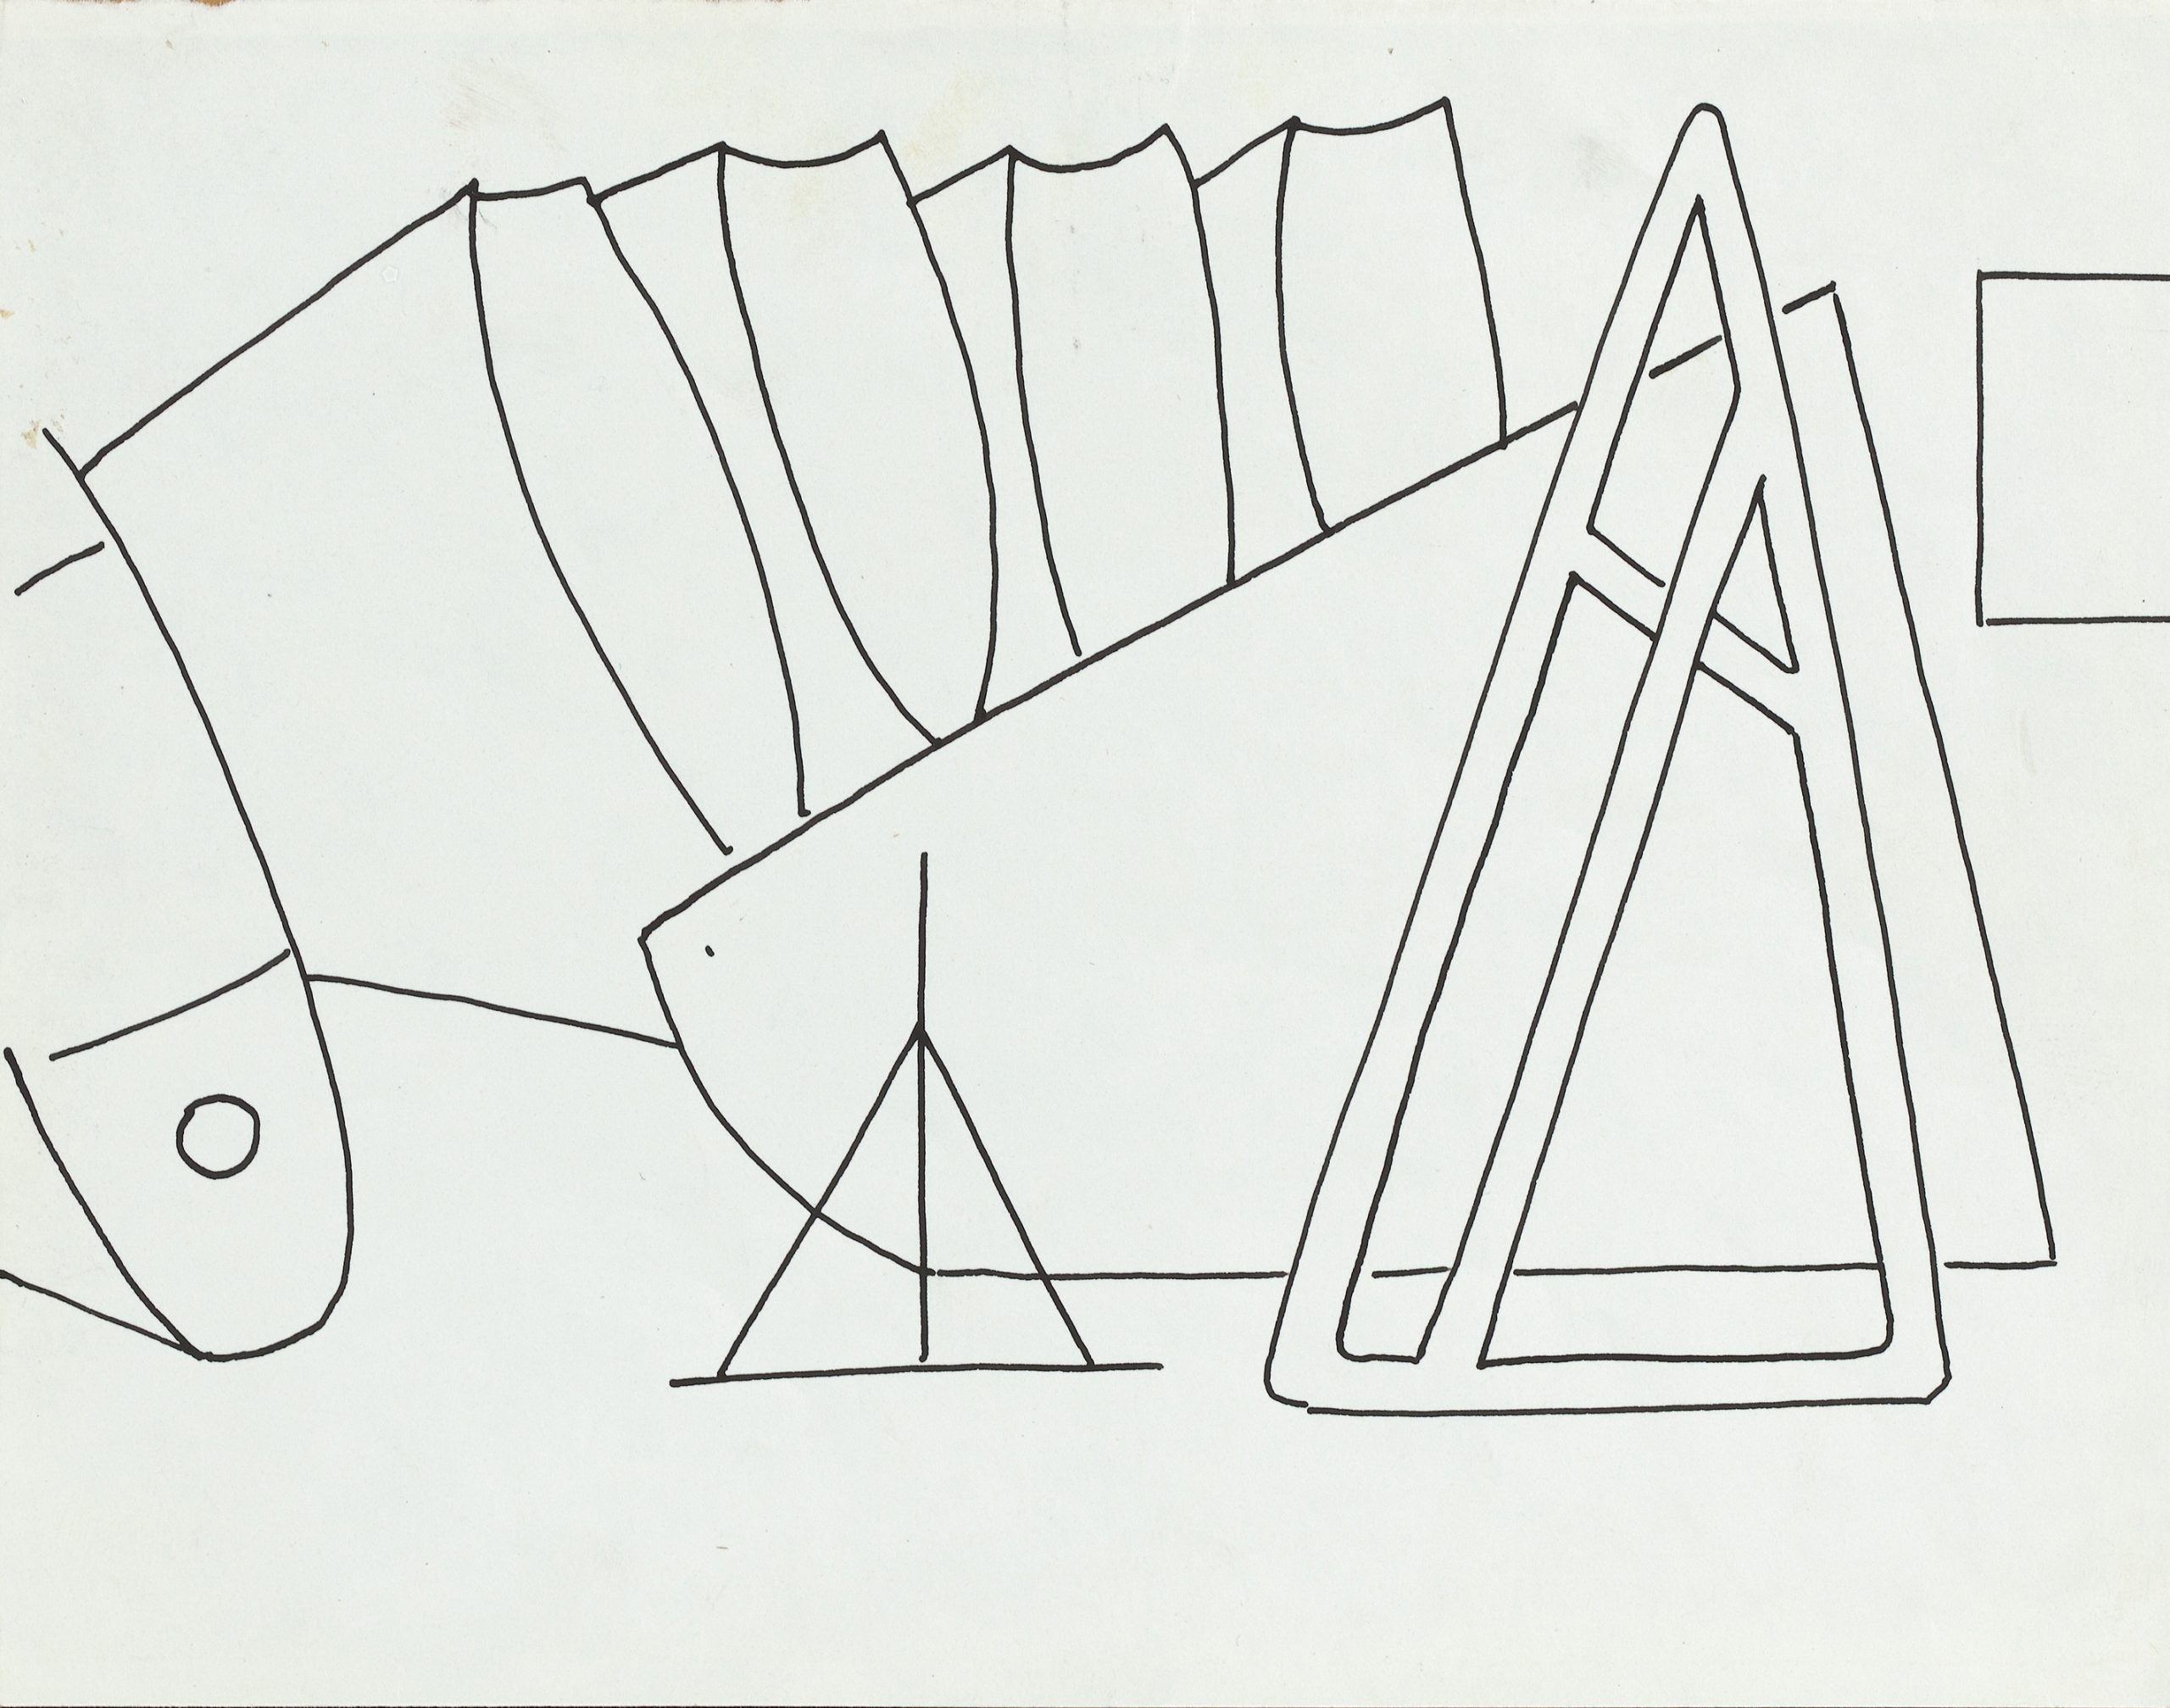 Abstracted line drawing of an aircraft factory with curved shapes floating in space and a triangular shape at the center.